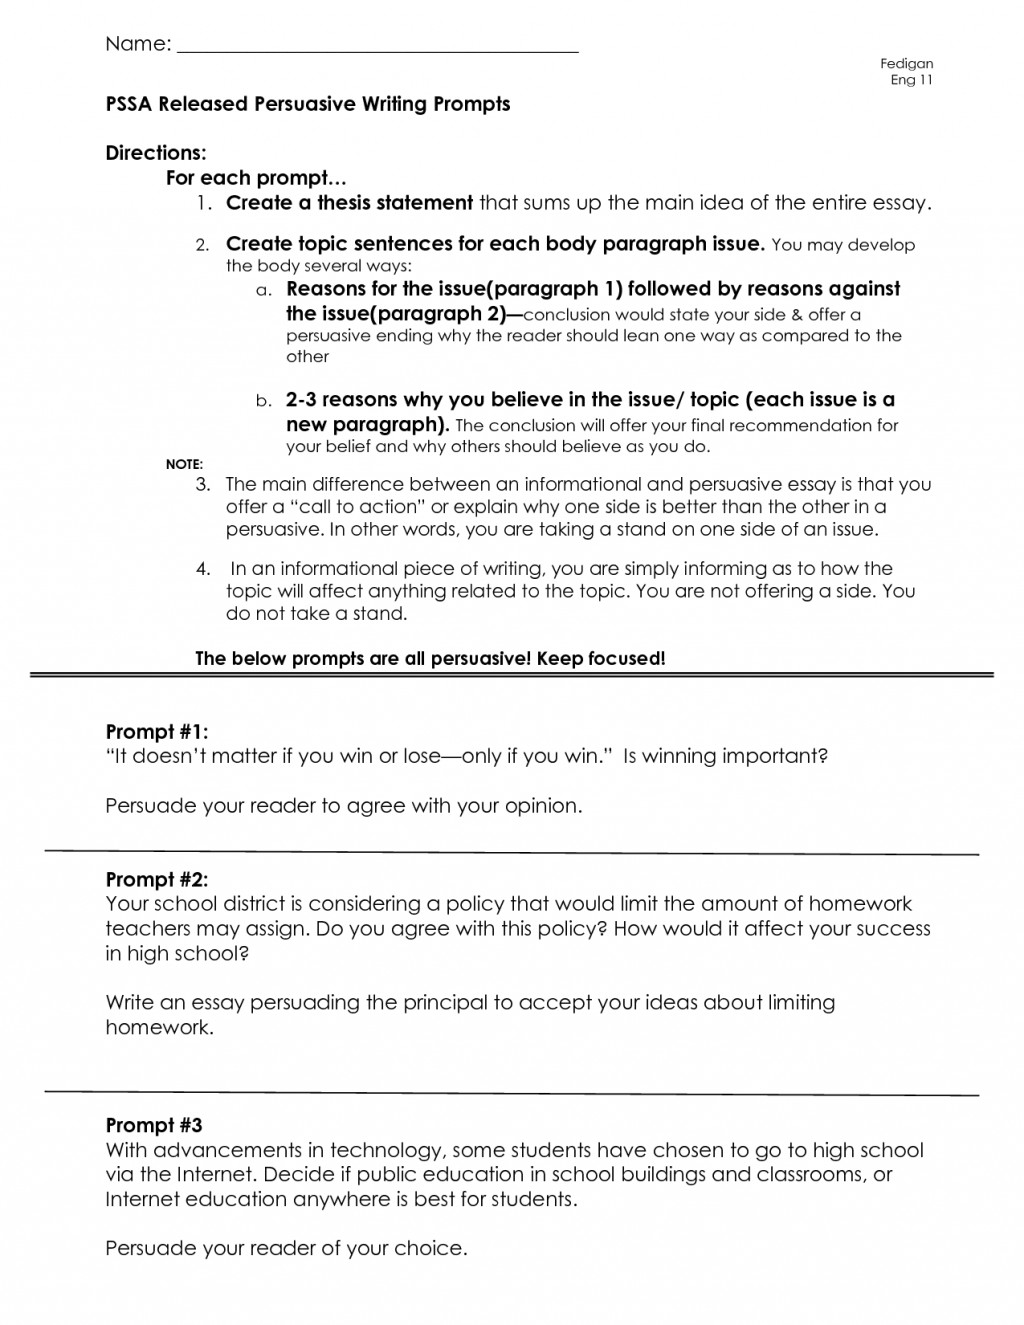 014 Persuasive Essay 6th Grade Writing Prompts 654695 Best For Middle School Science The Crucible Macbeth Large